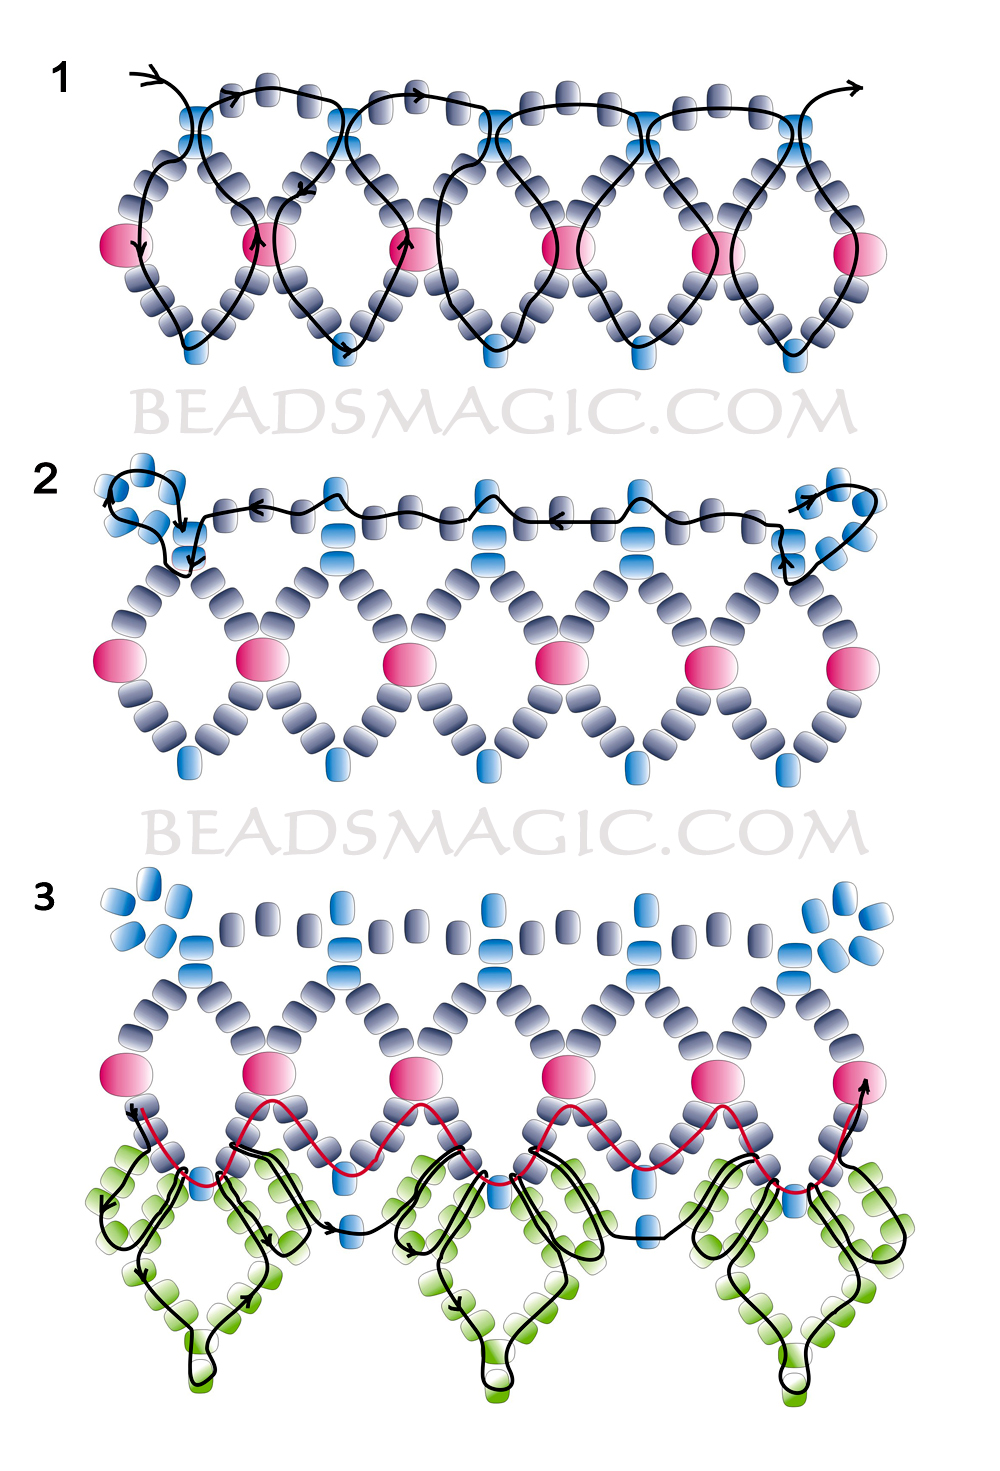 Free pattern for beautiful beaded necklace Tears In Rain | Beads Magic